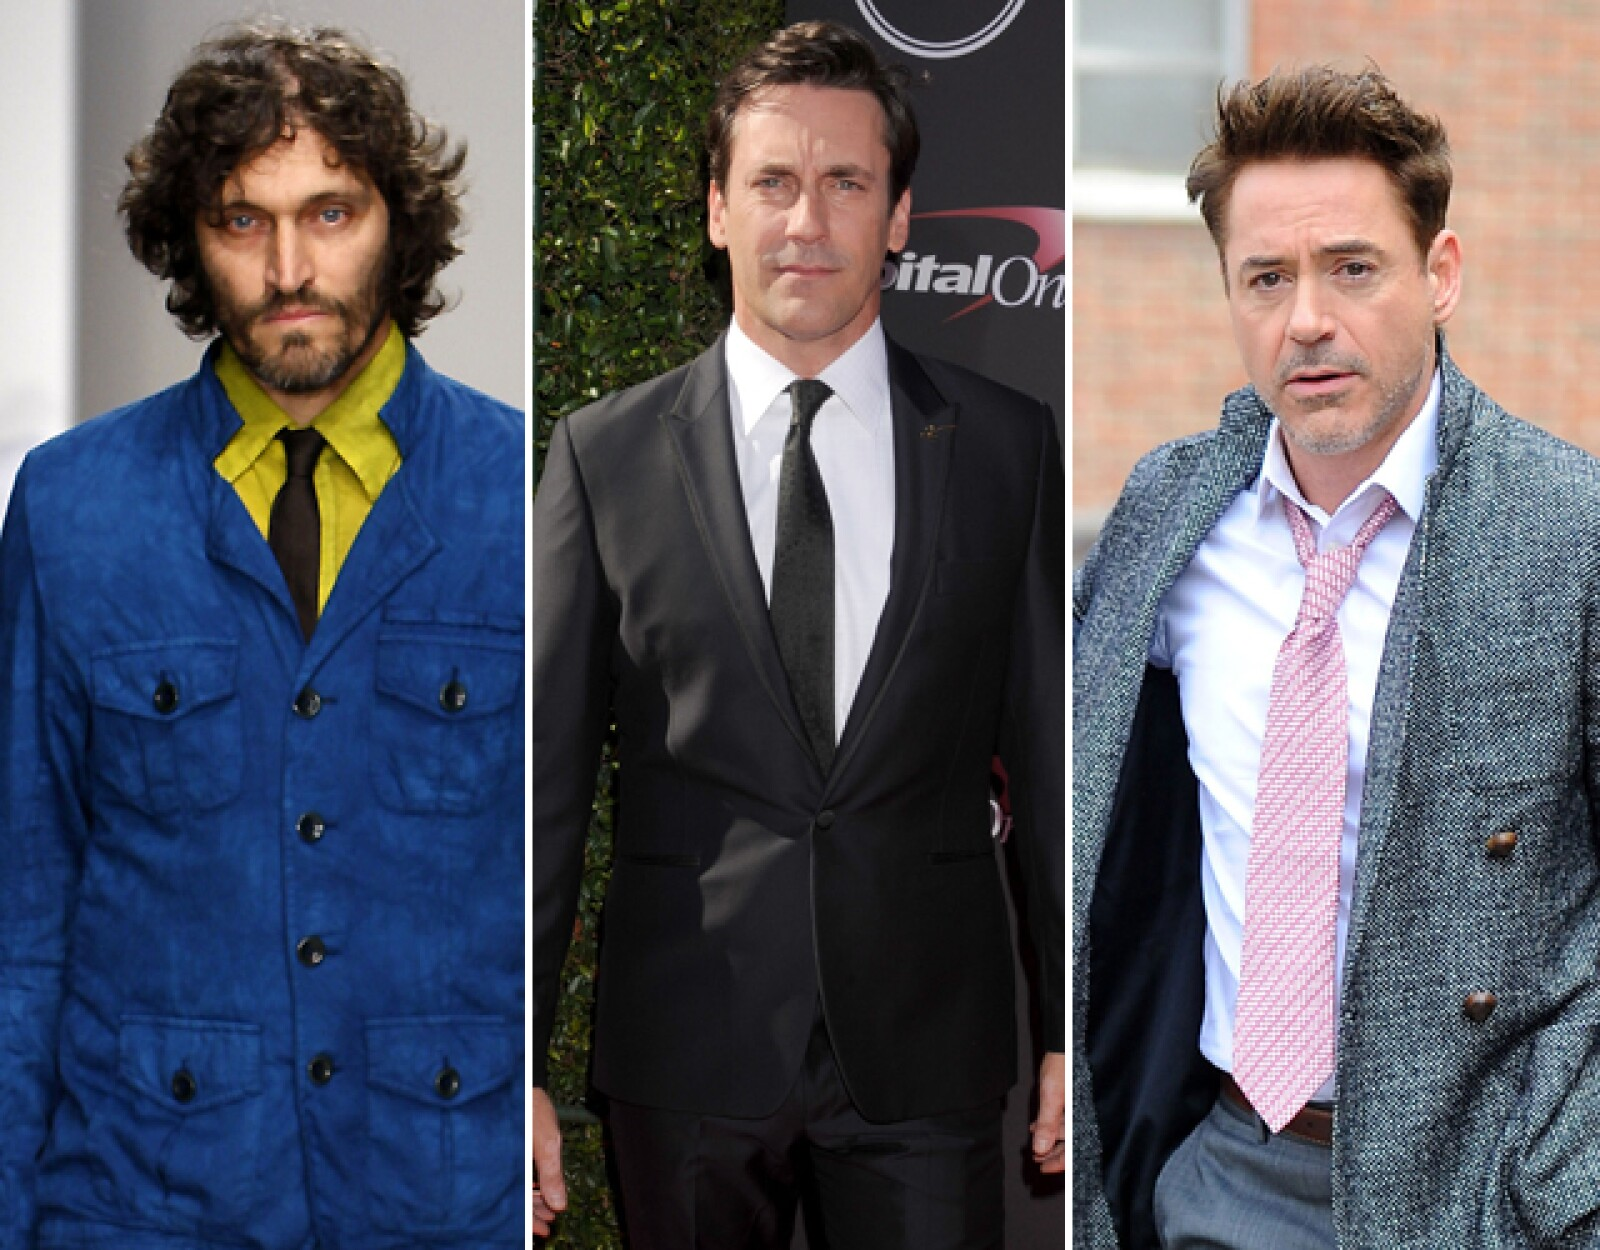 Tessa: Vincent Gallo, Robert Downey Jr, Jon Hamm y Adrien Brody. ¡Fan de Mad Men!